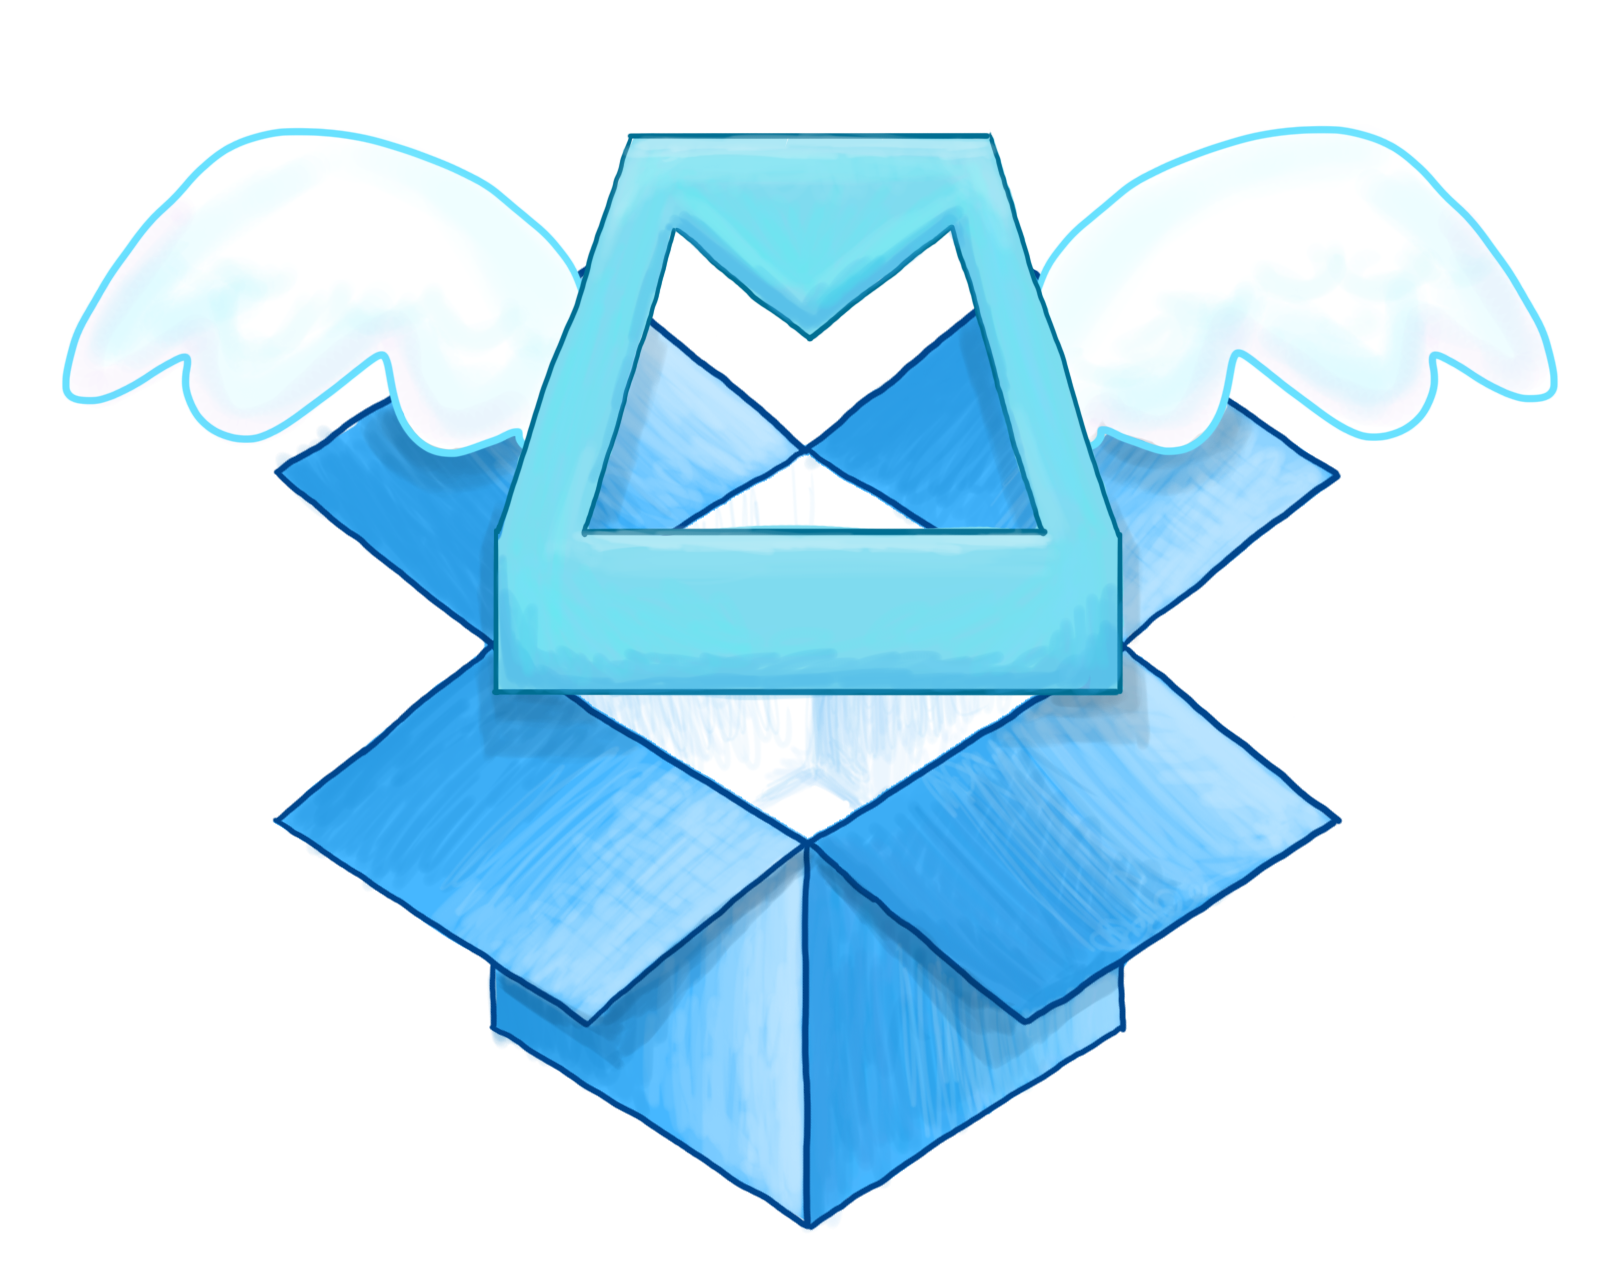 Mailbox and Dropbox